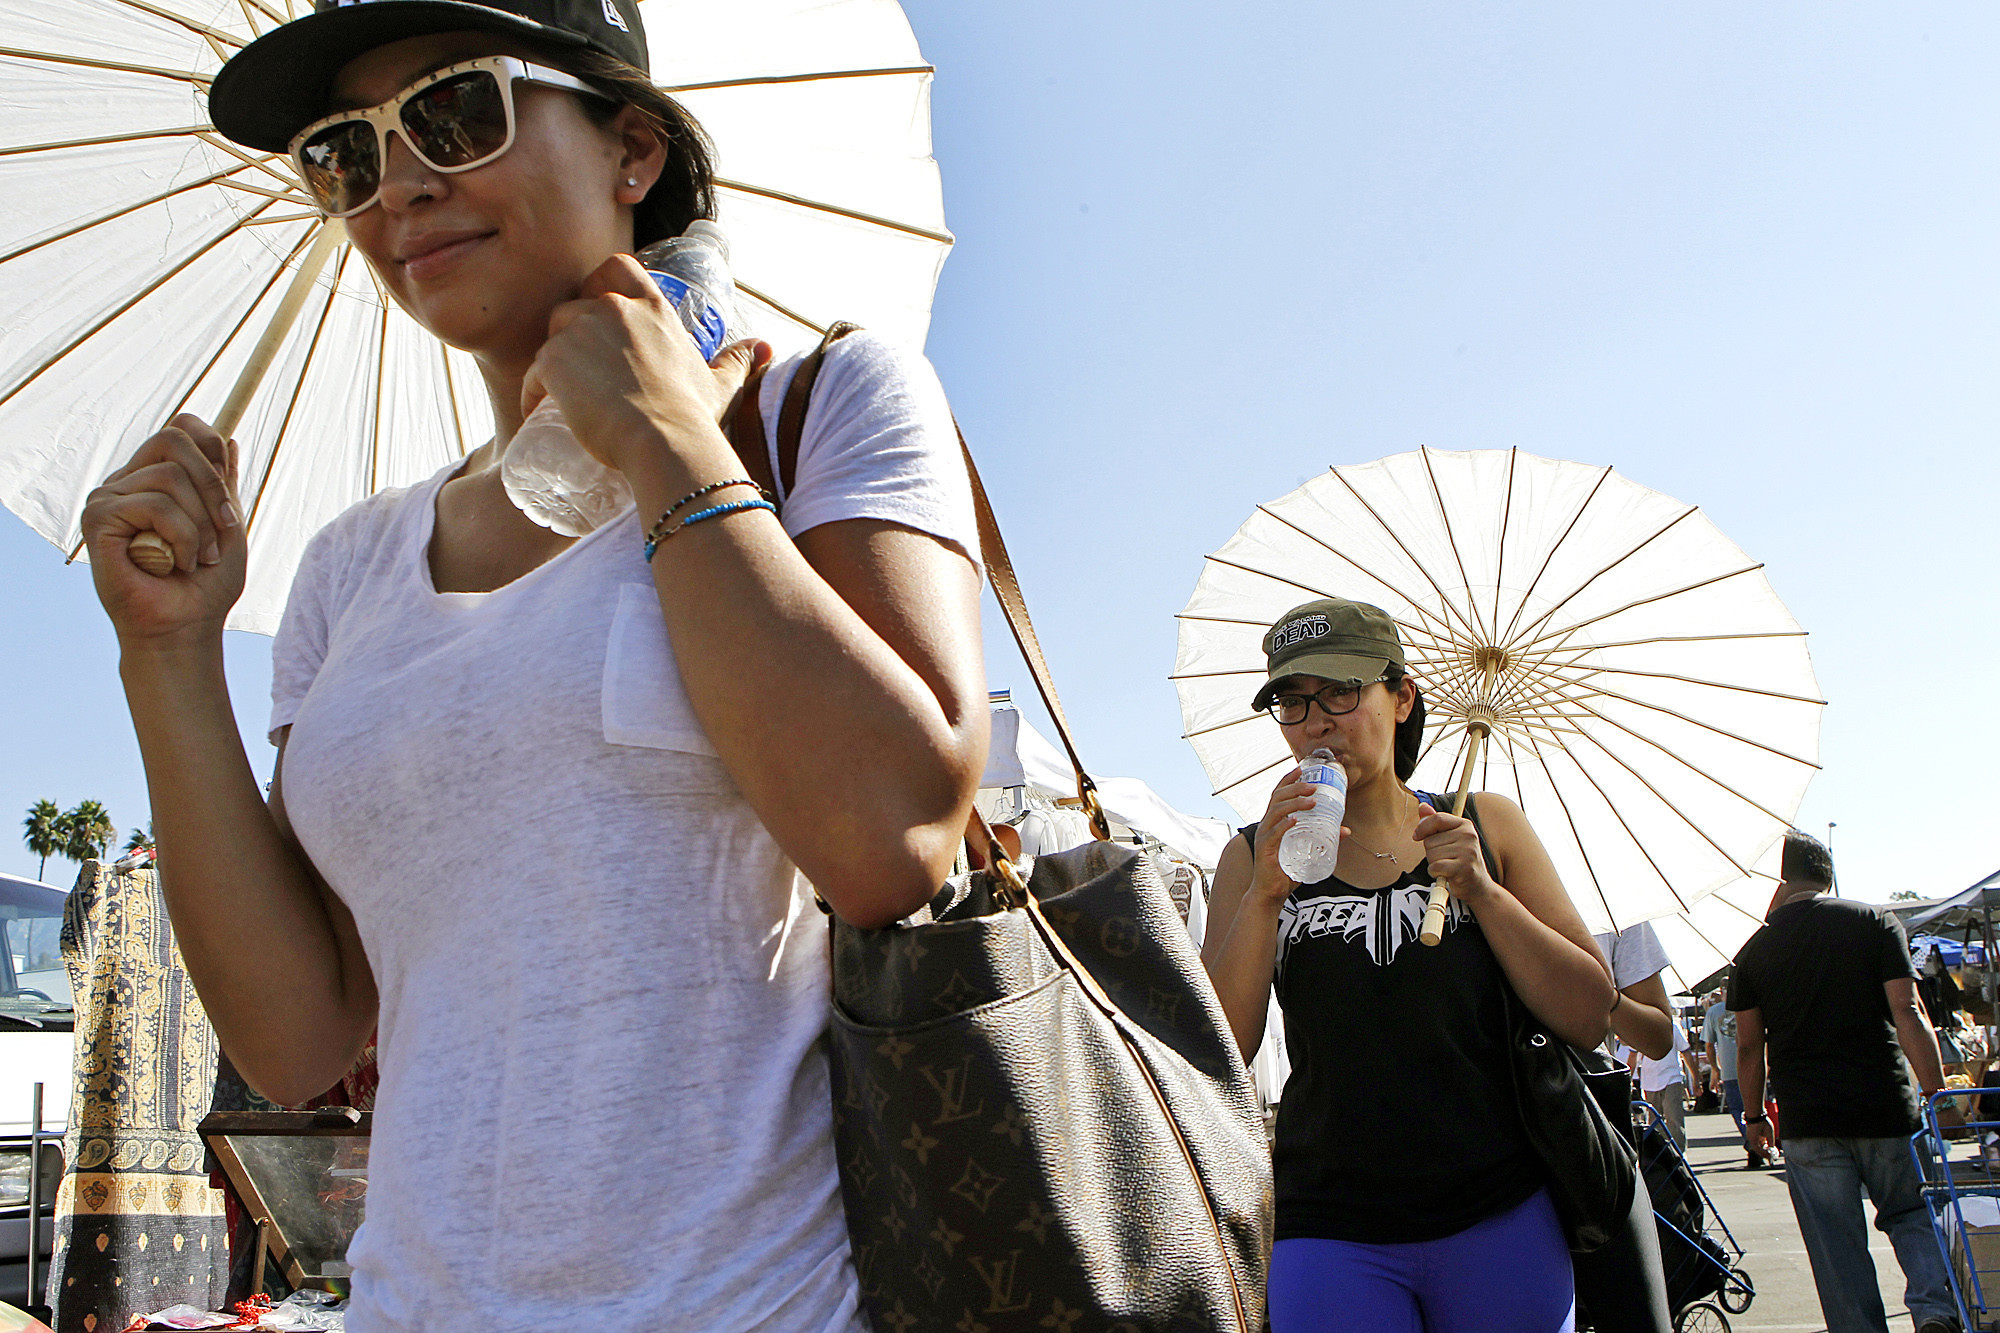 Related story: How hot is it, L.A.? We're breaking records; show us your misery